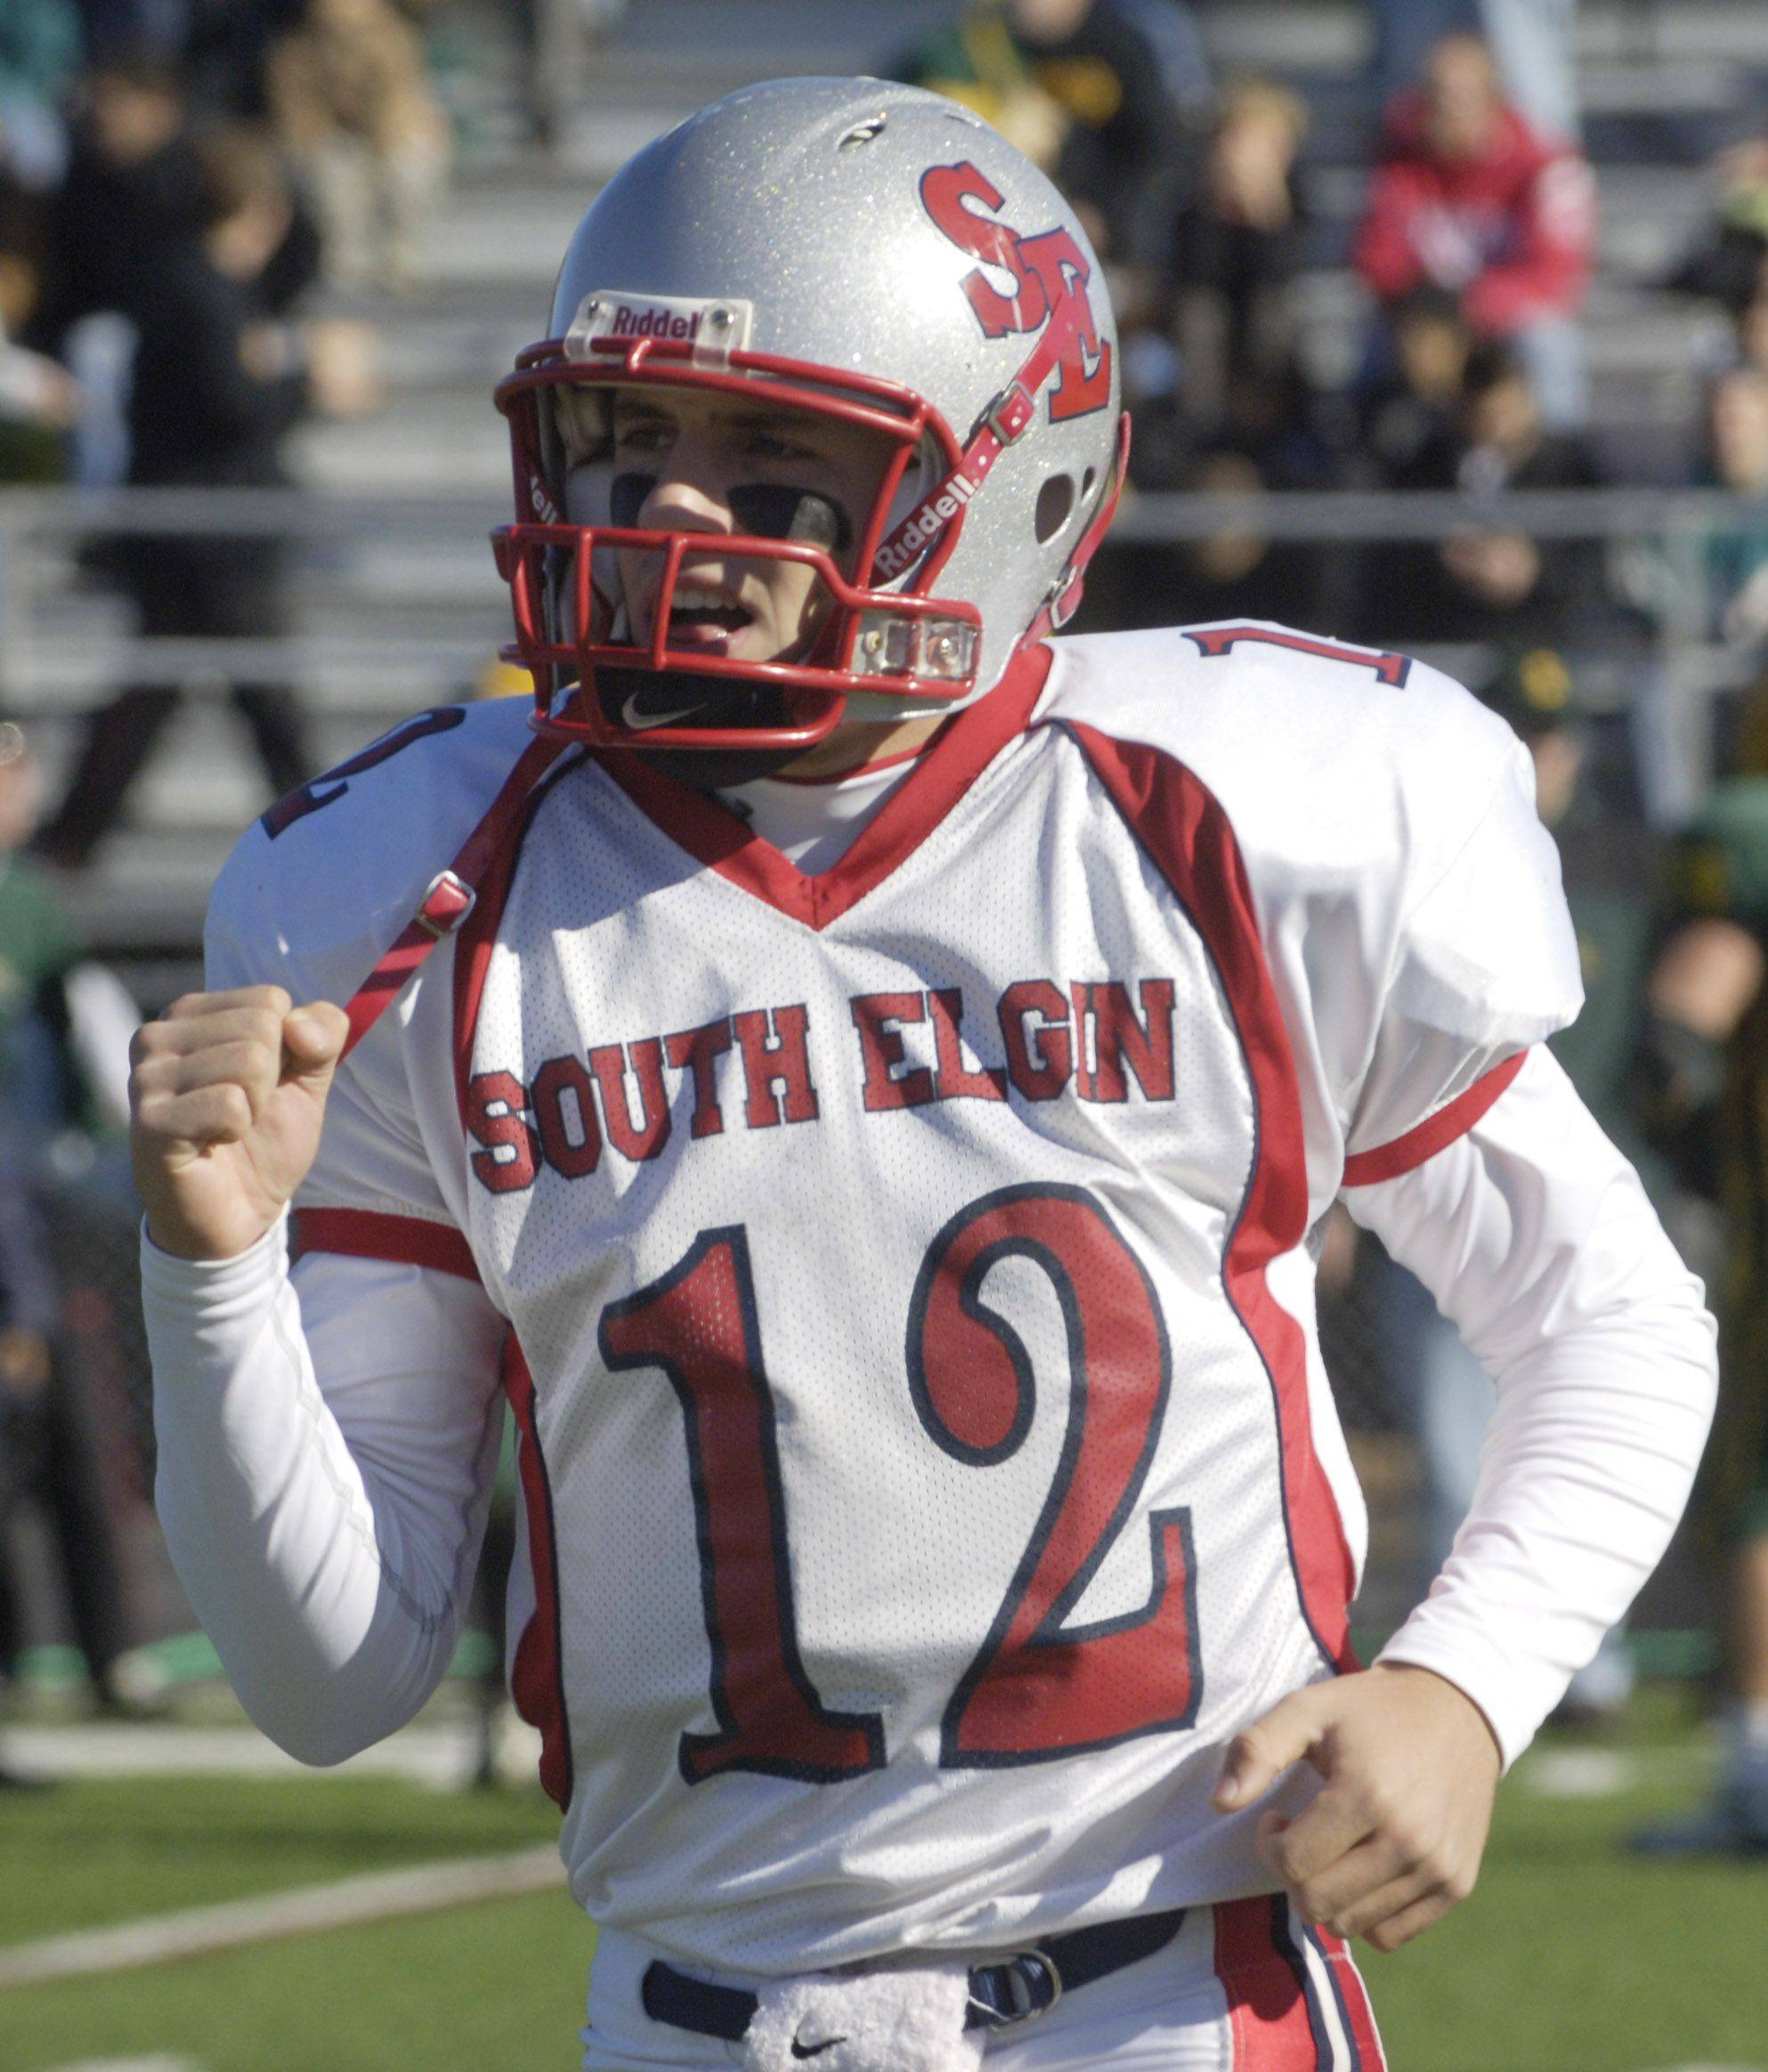 South Elgin quarterback John Menken pumps his fist as he heads back to the sideline after scoring a touchdown against Stevenson Saturday.